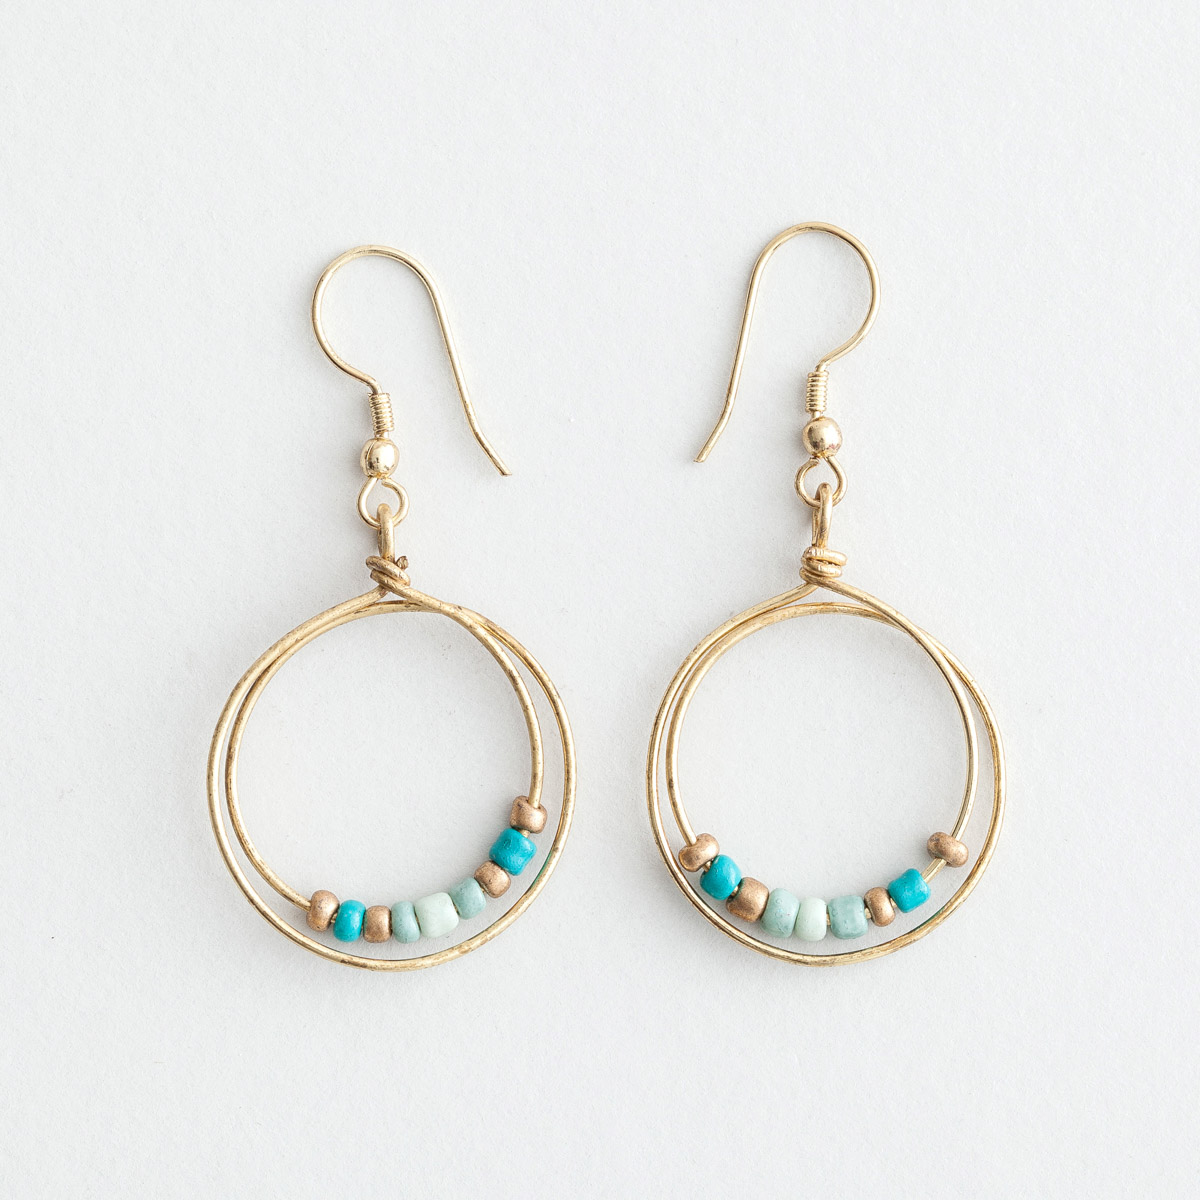 Village Artisan - Friendship Earrings, Blue